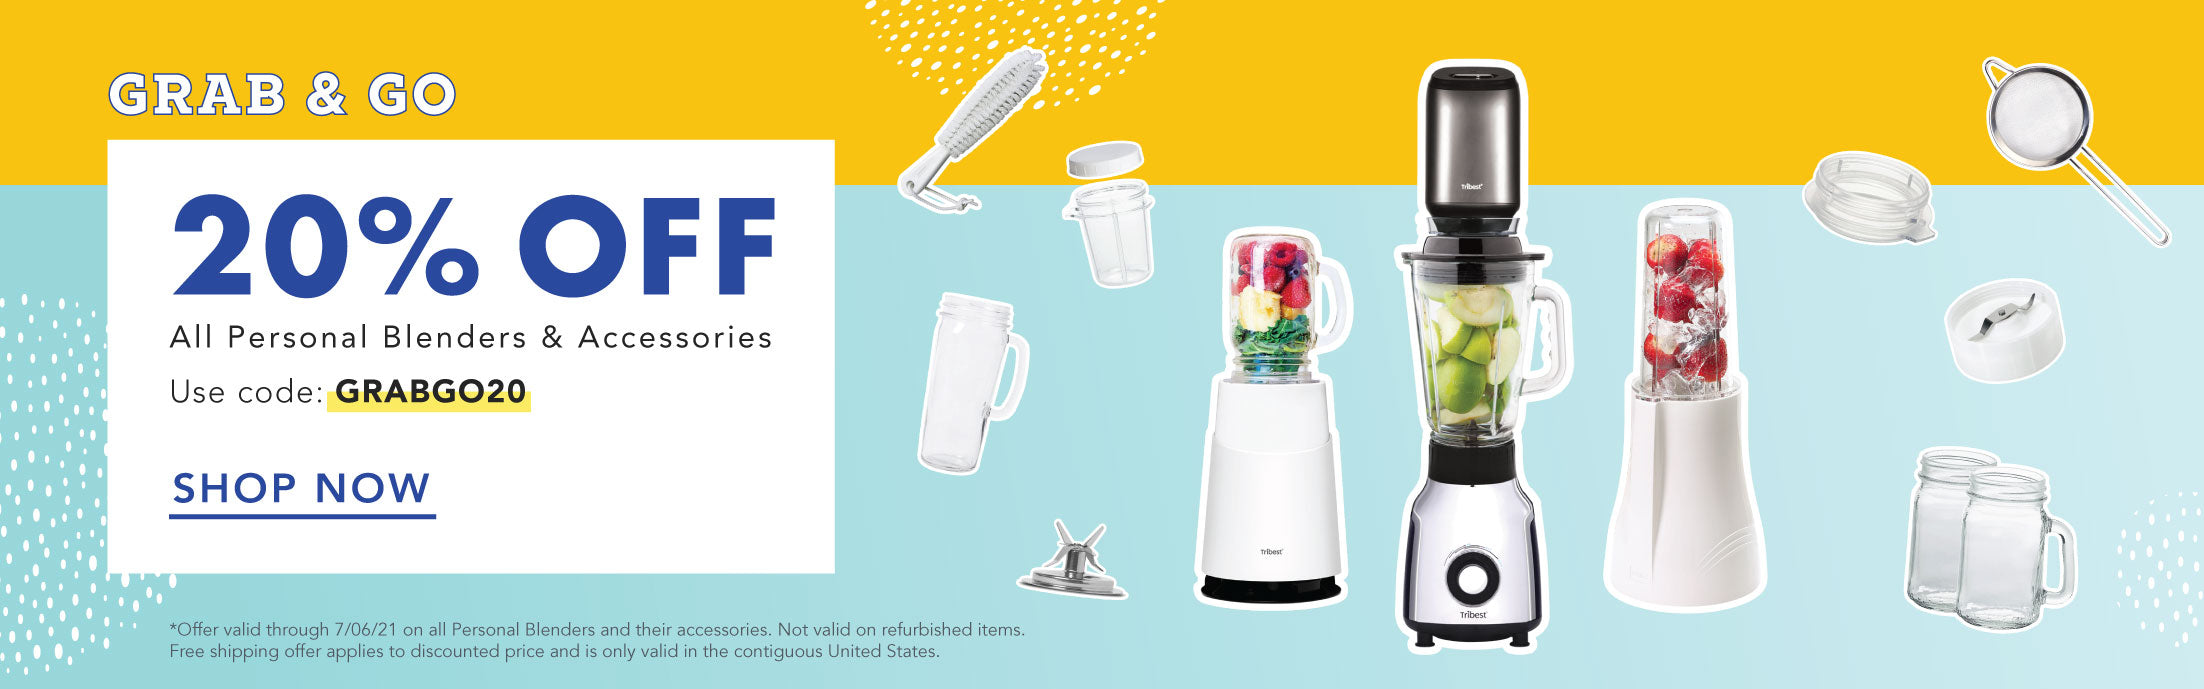 Alt: Save 20% on all Personal Blenders & Accessories through 7/06/21 with code: GRABGO20.